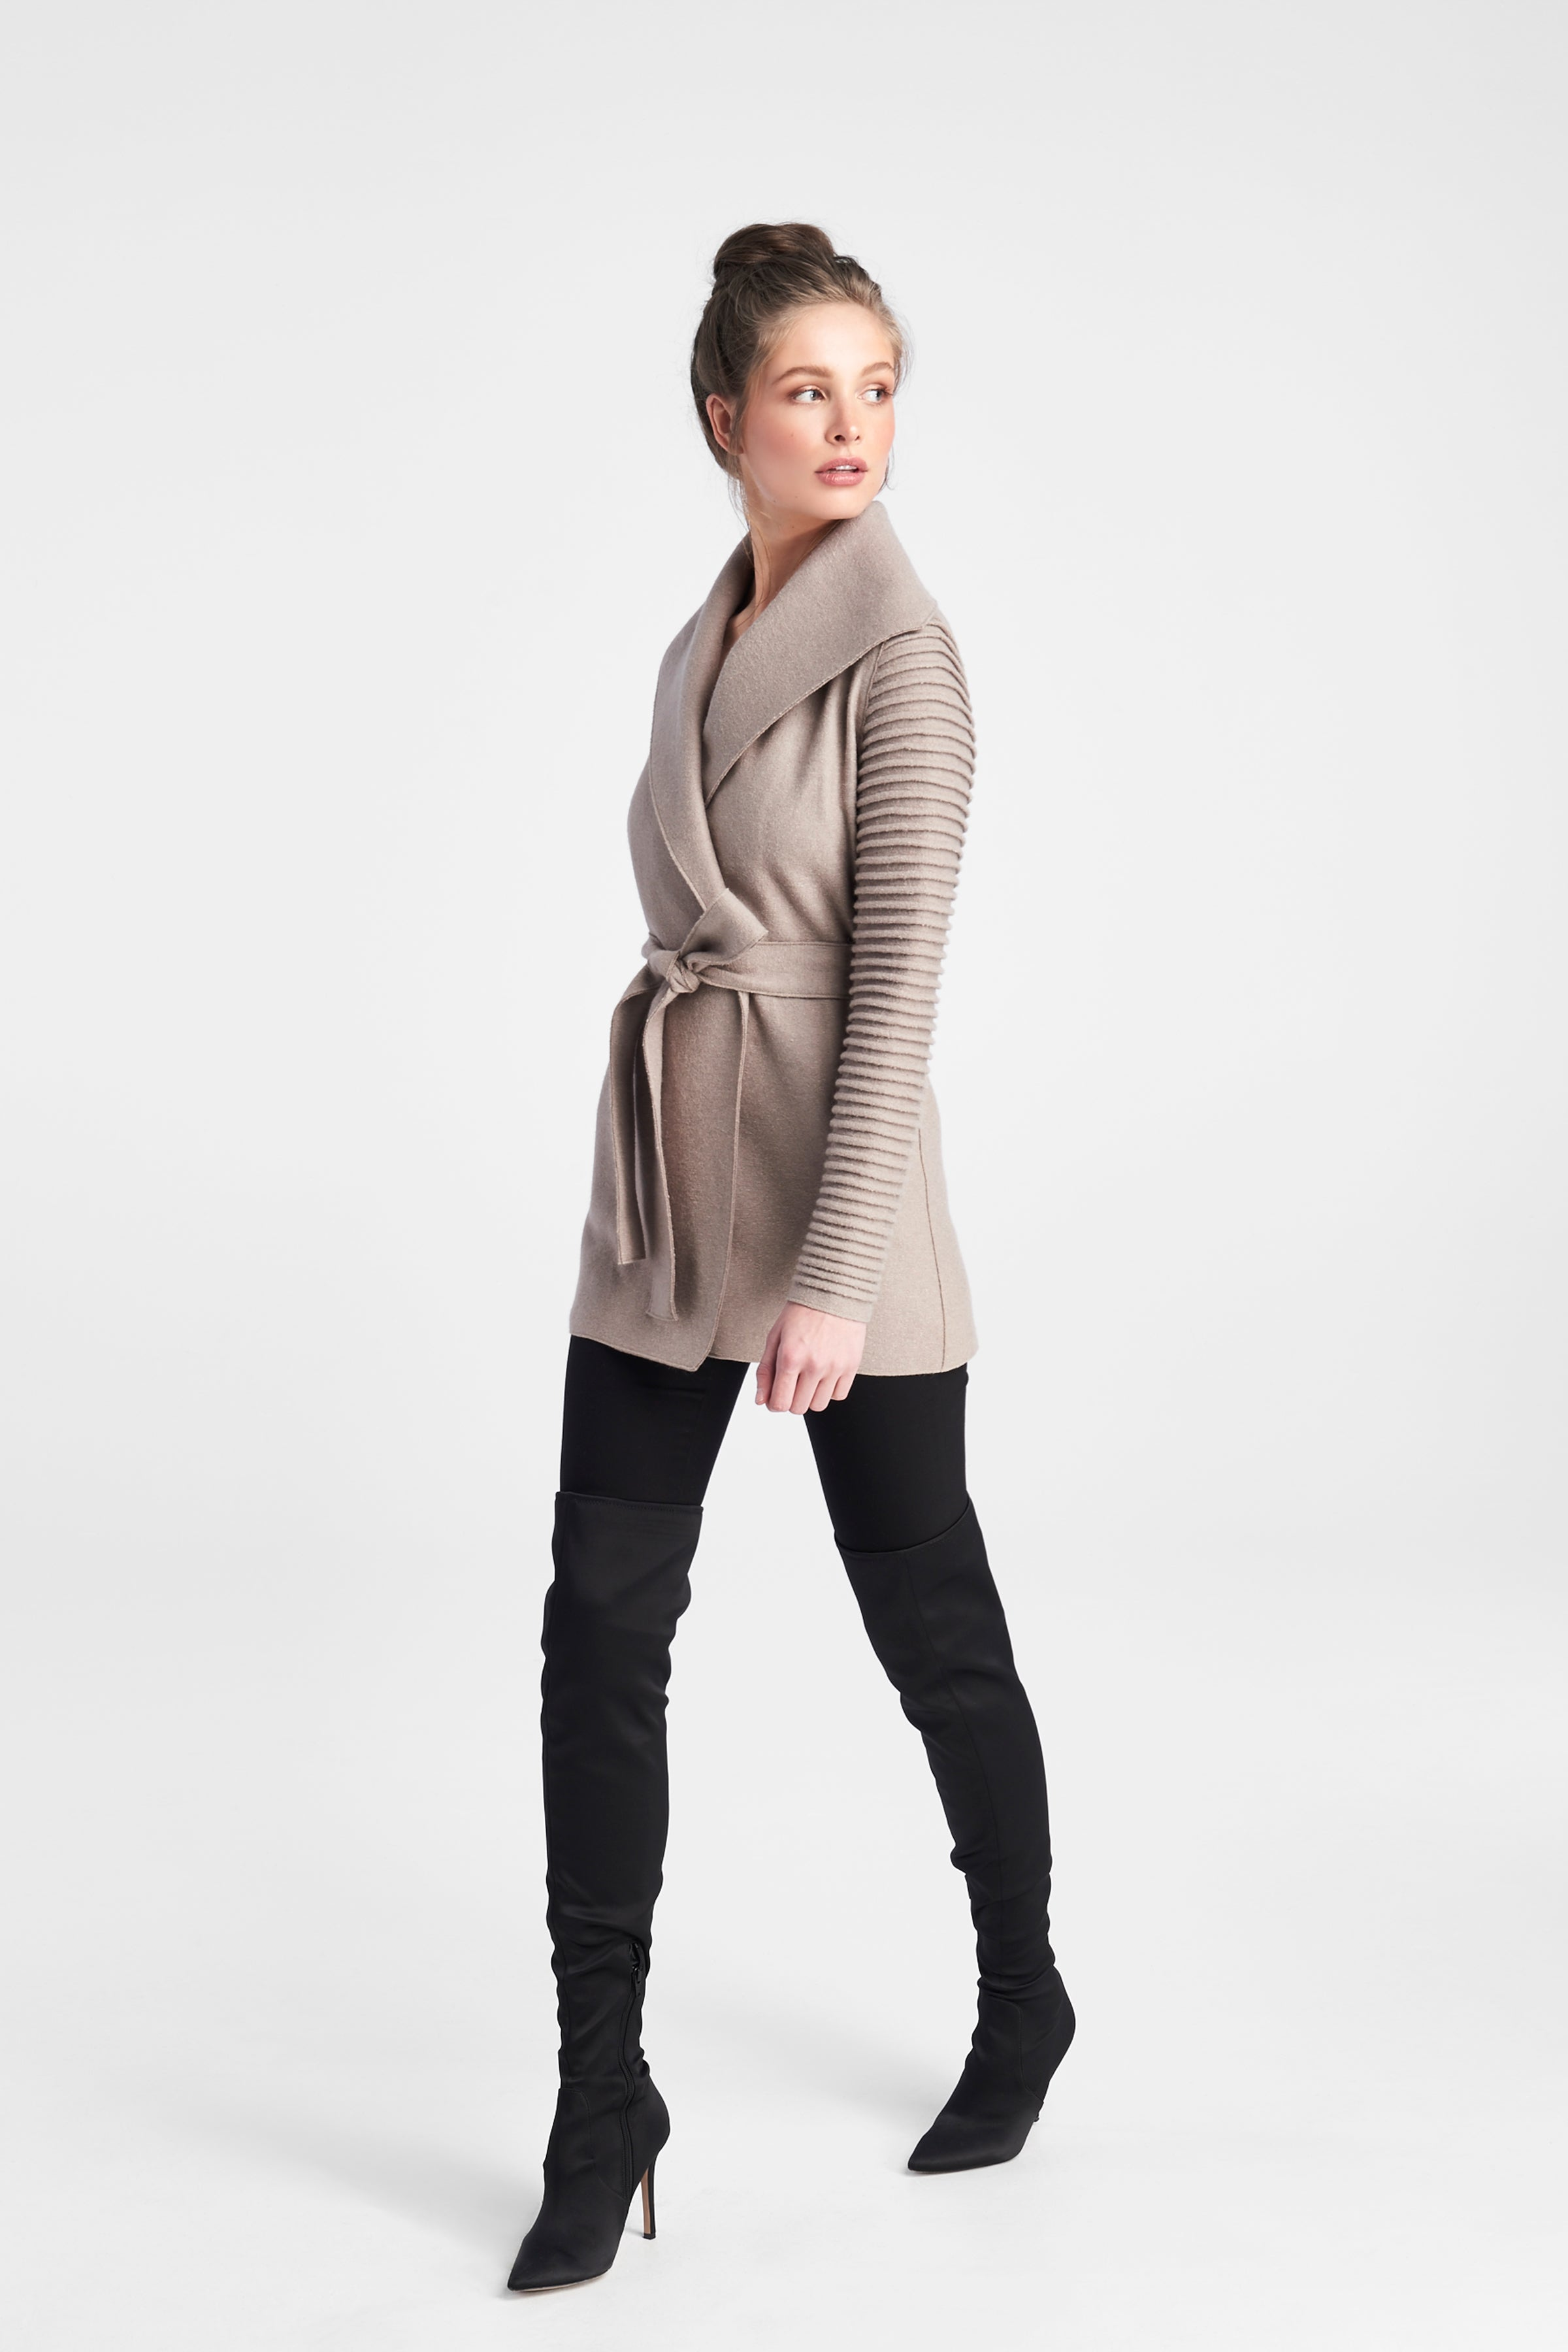 Ribbed Sleeves Wrap Coat Simply Taupe